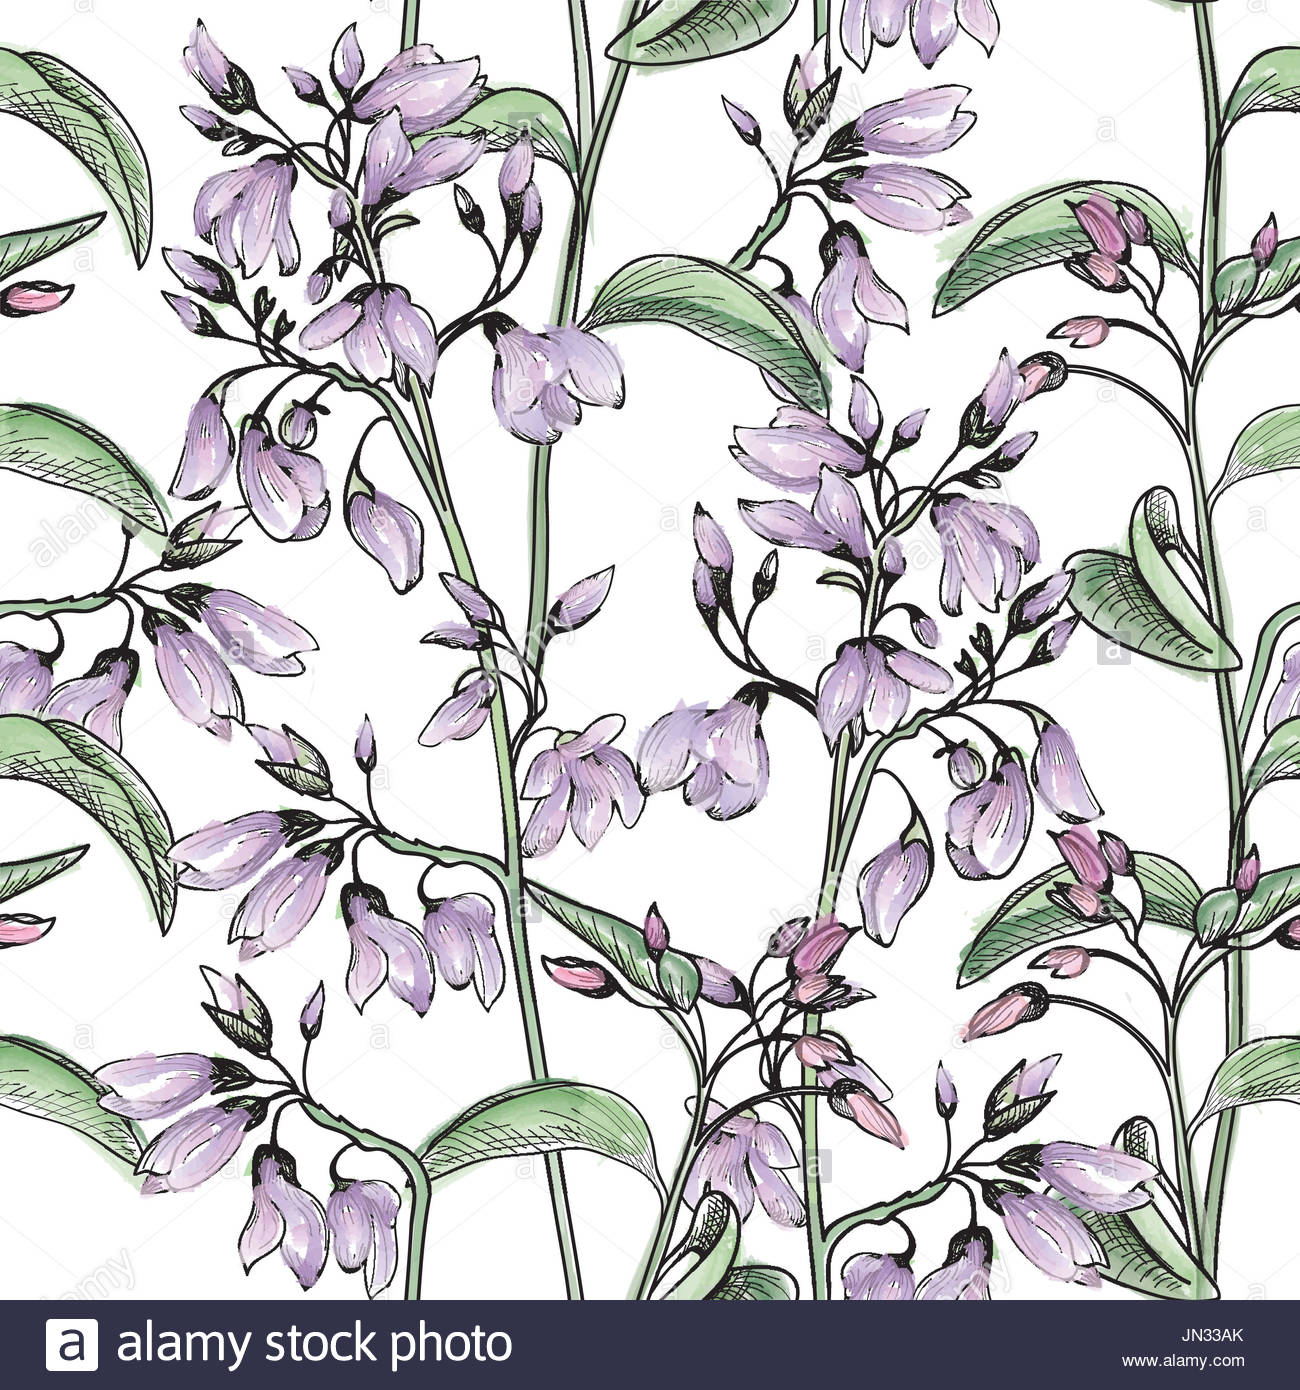 1300x1390 Floral Seamless Pattern. Flower Watercolor Background. Flourish